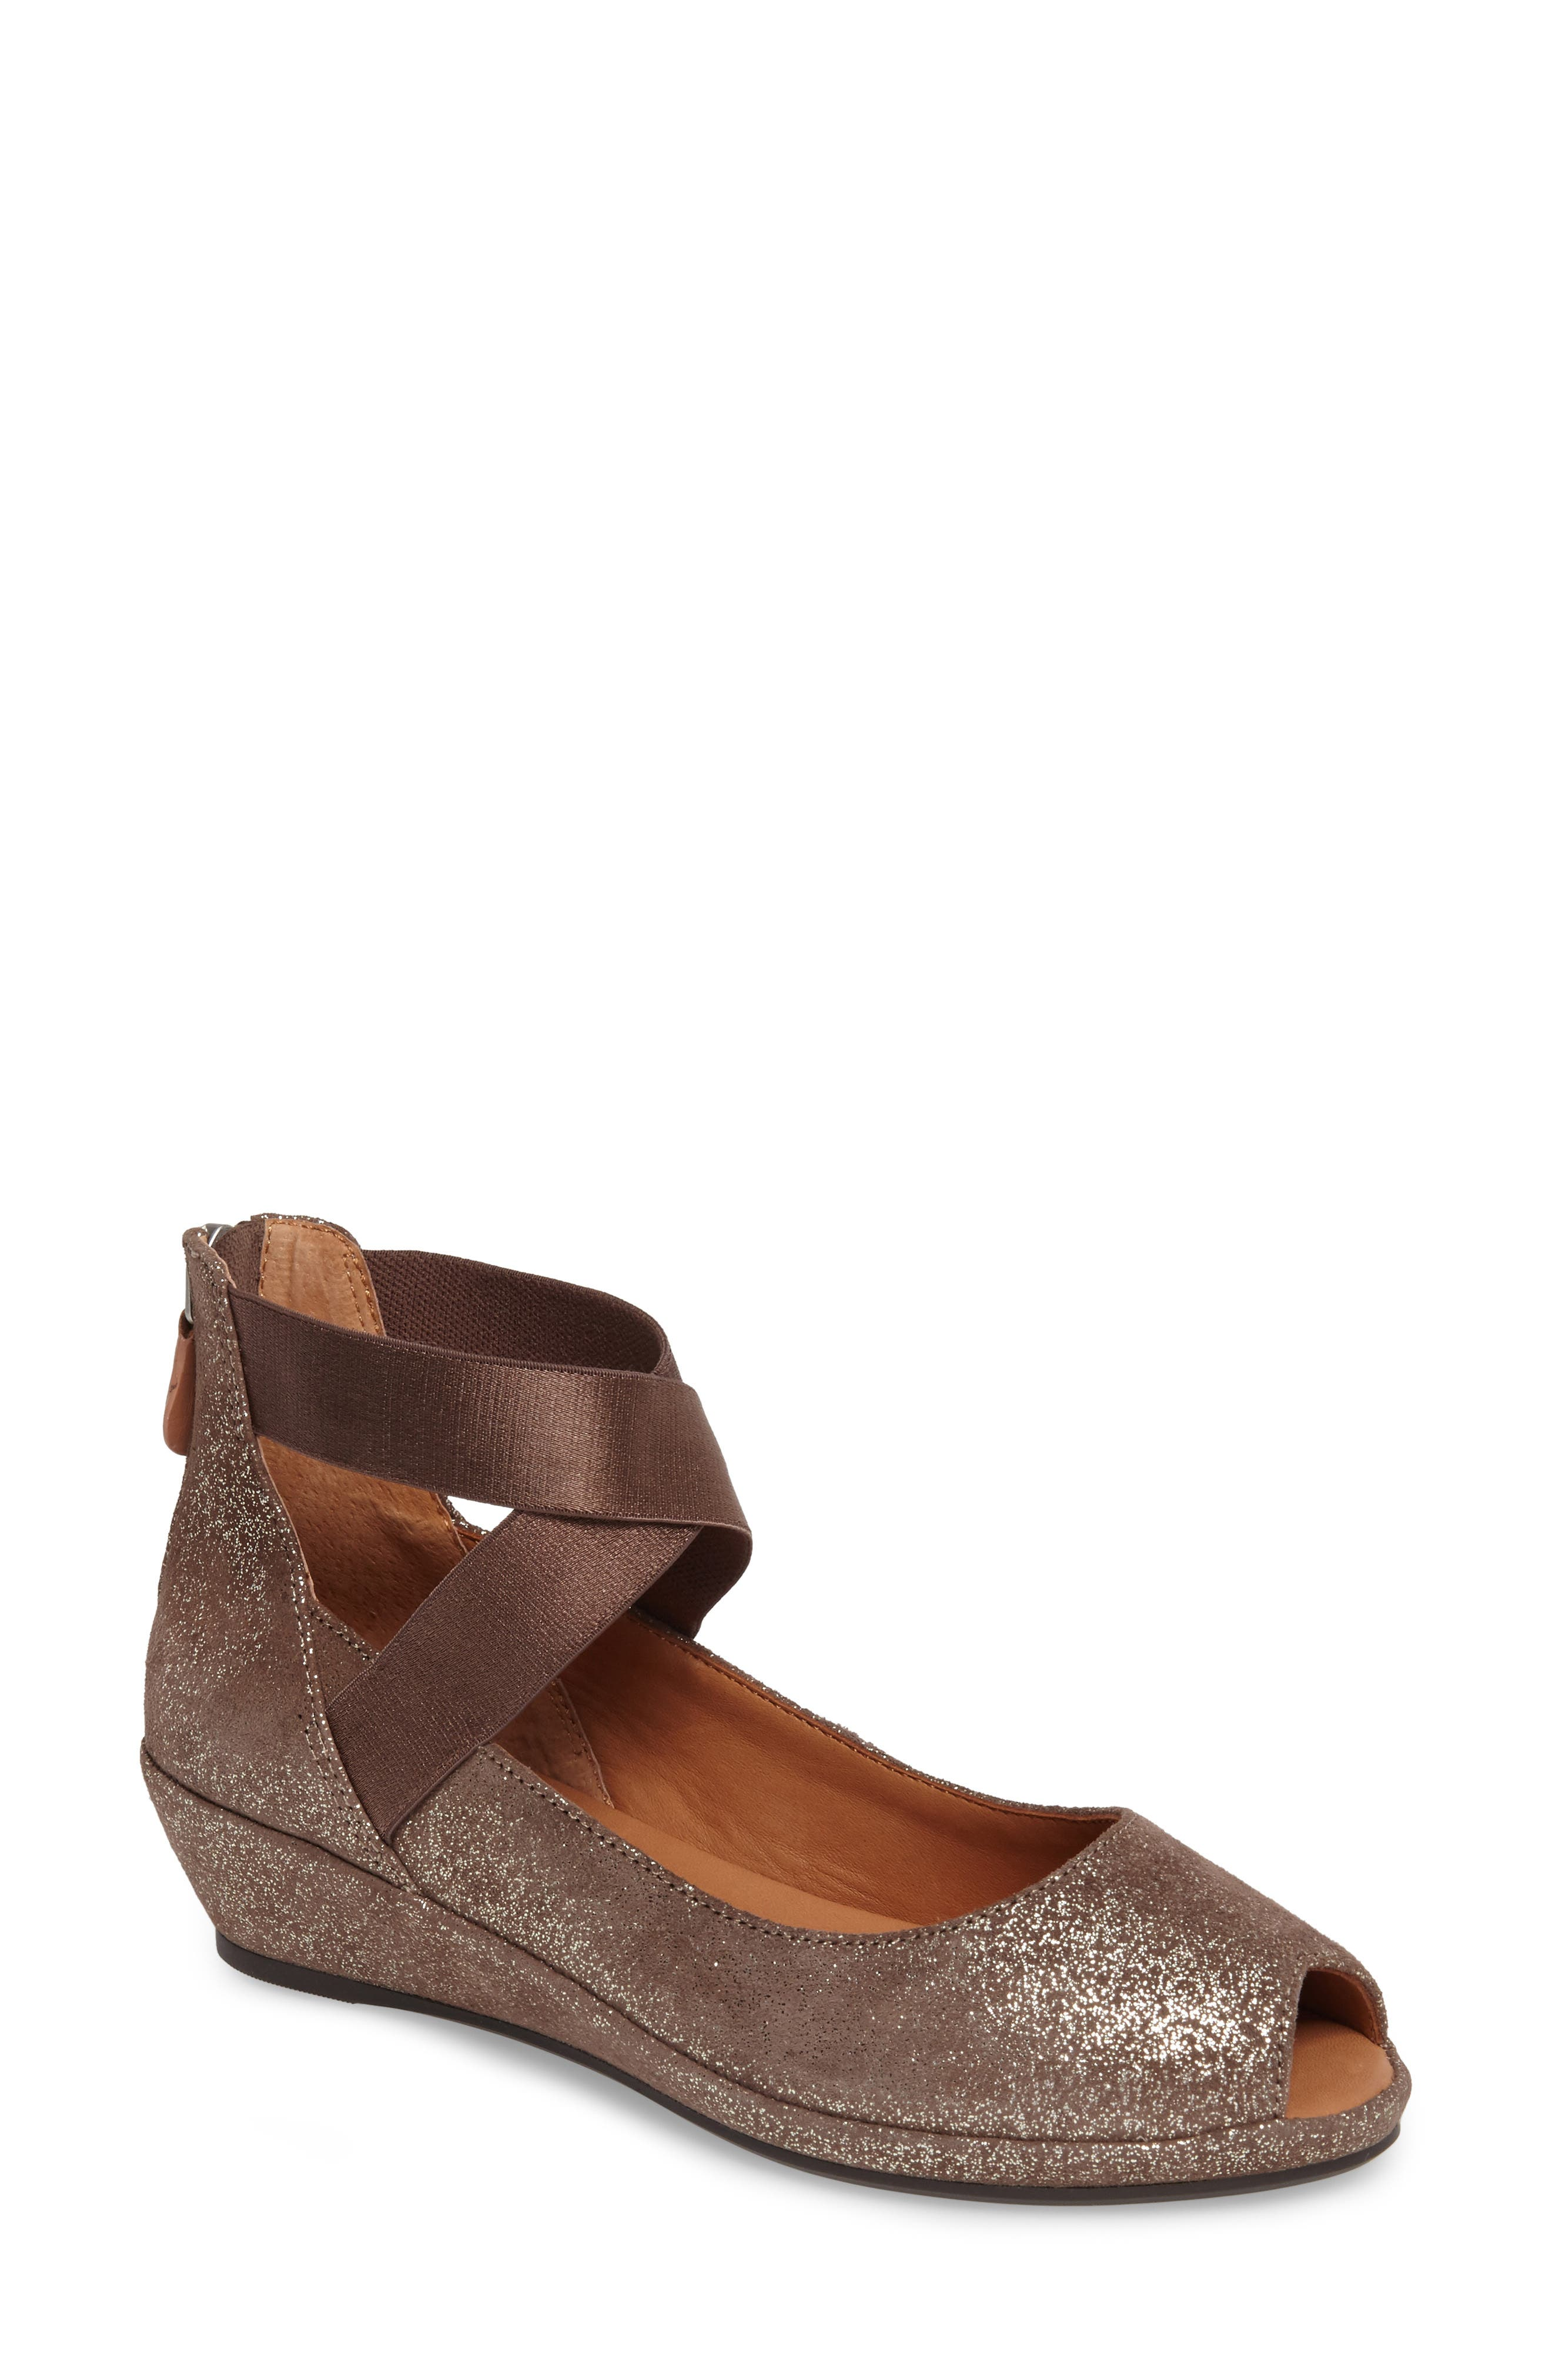 Main Image - Gentle Souls Lisa Wedge Pump (Women)